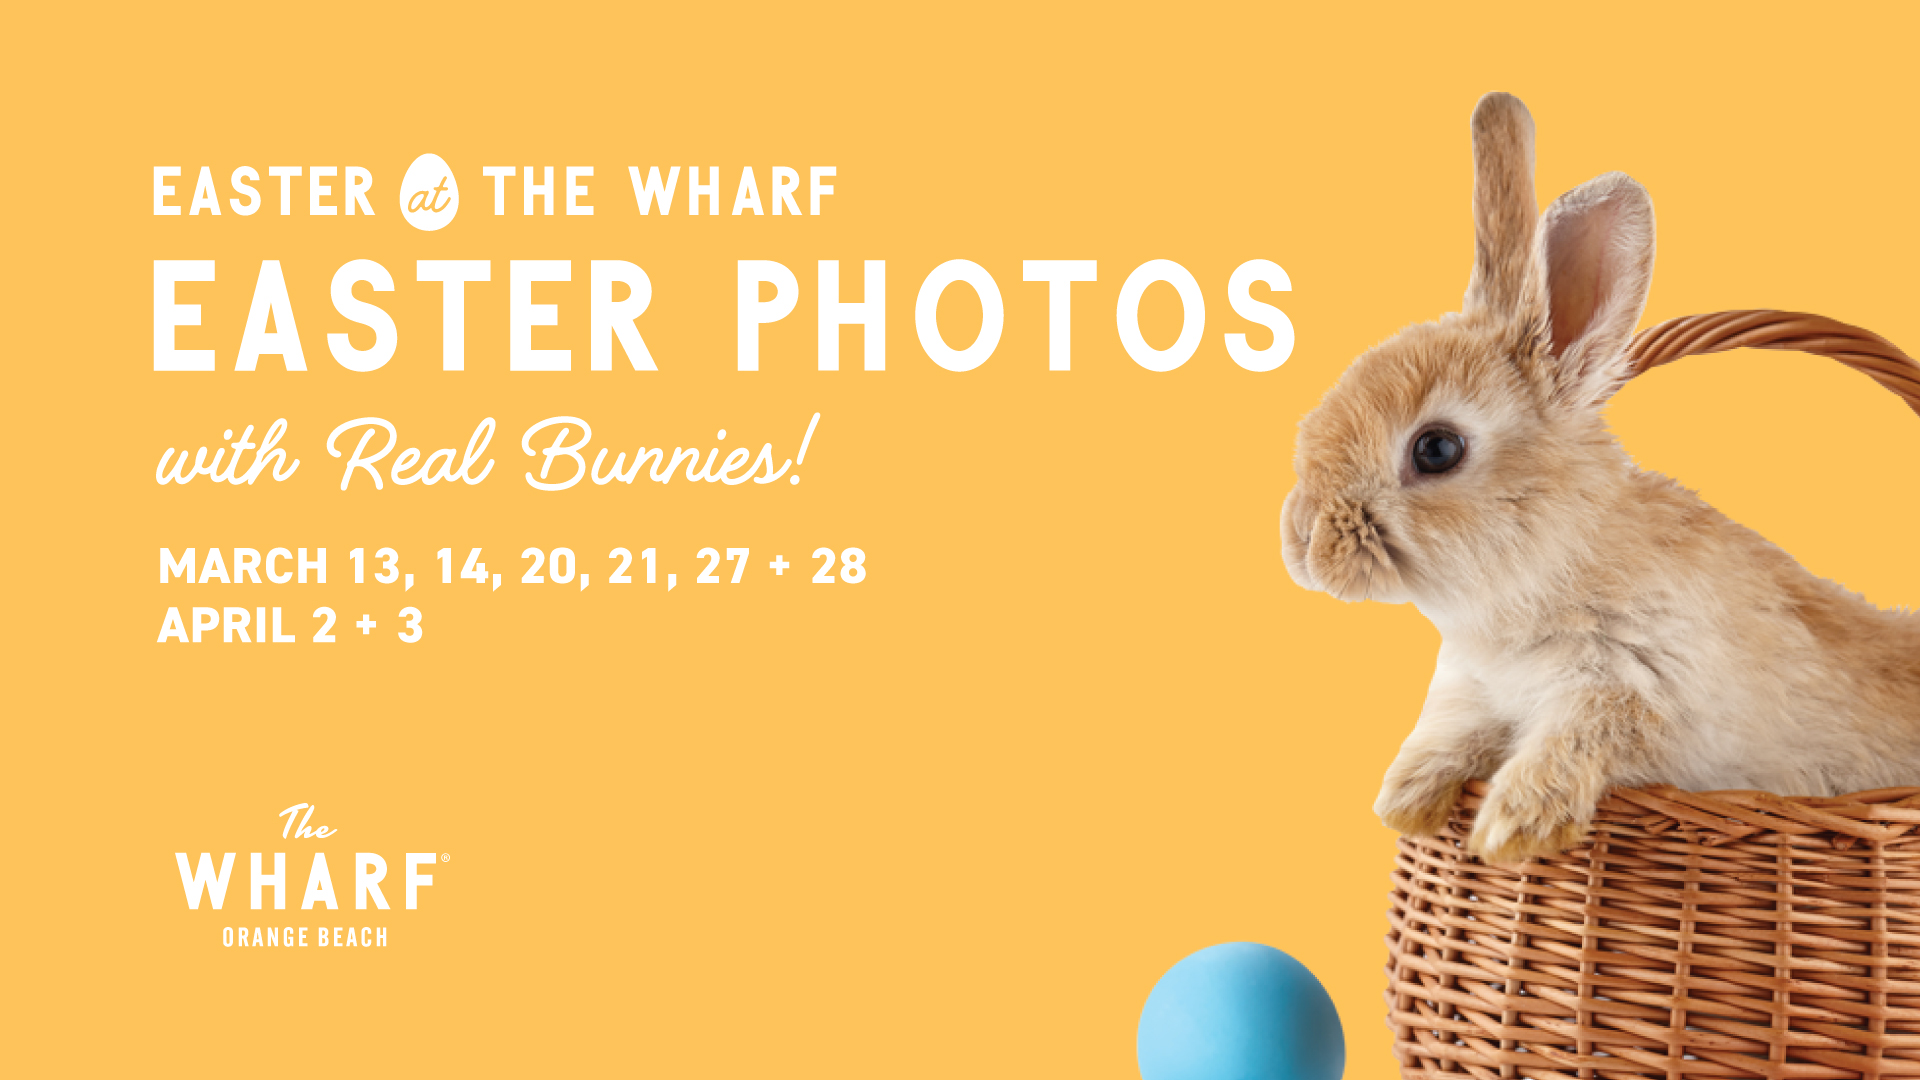 Easter Photos at The Wharf